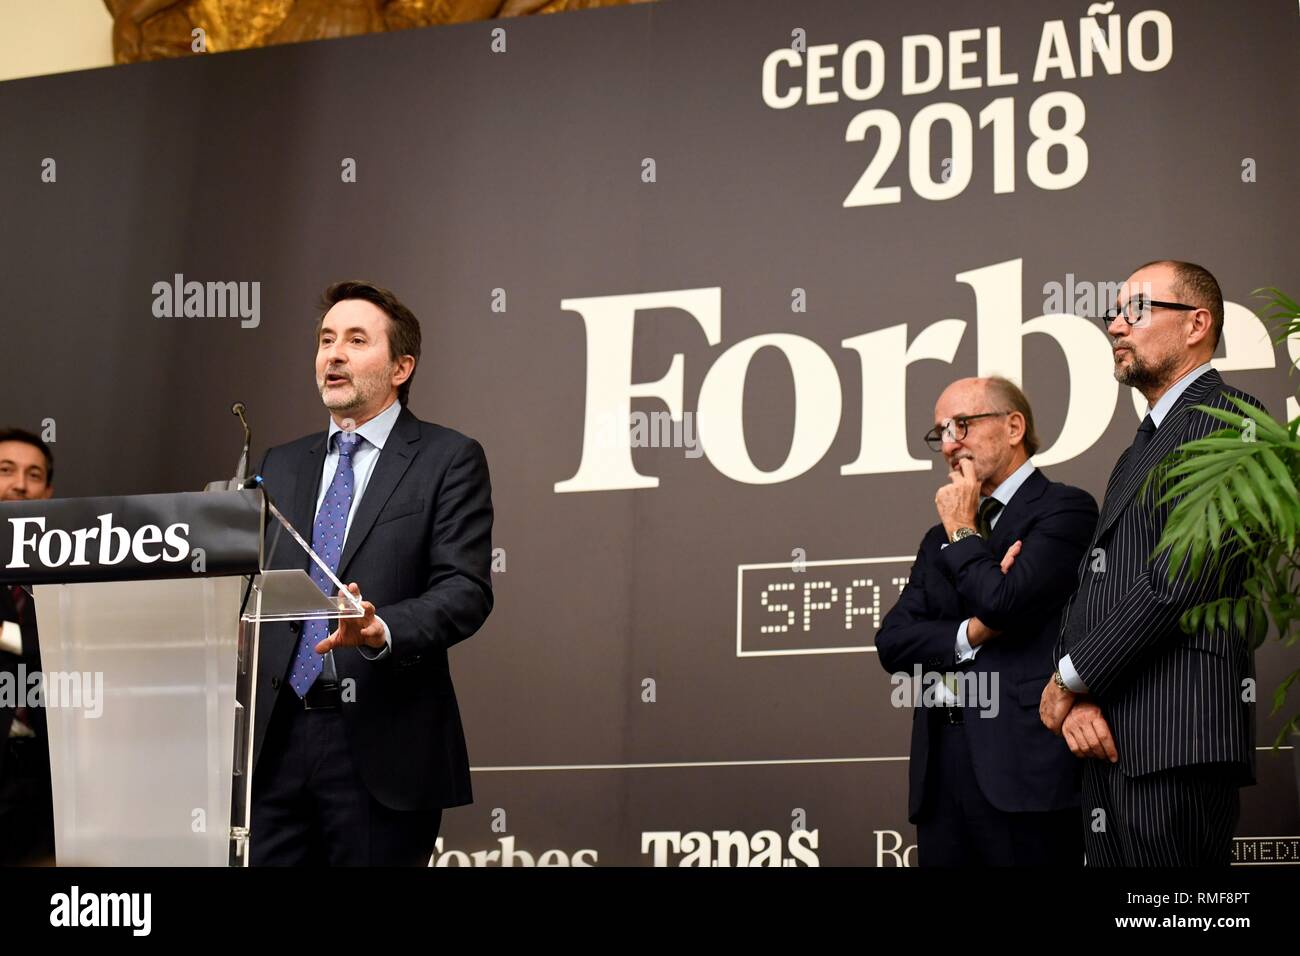 Madrid, Spain  14th Feb, 2019  Spanish company Repsol's CEO, Josu